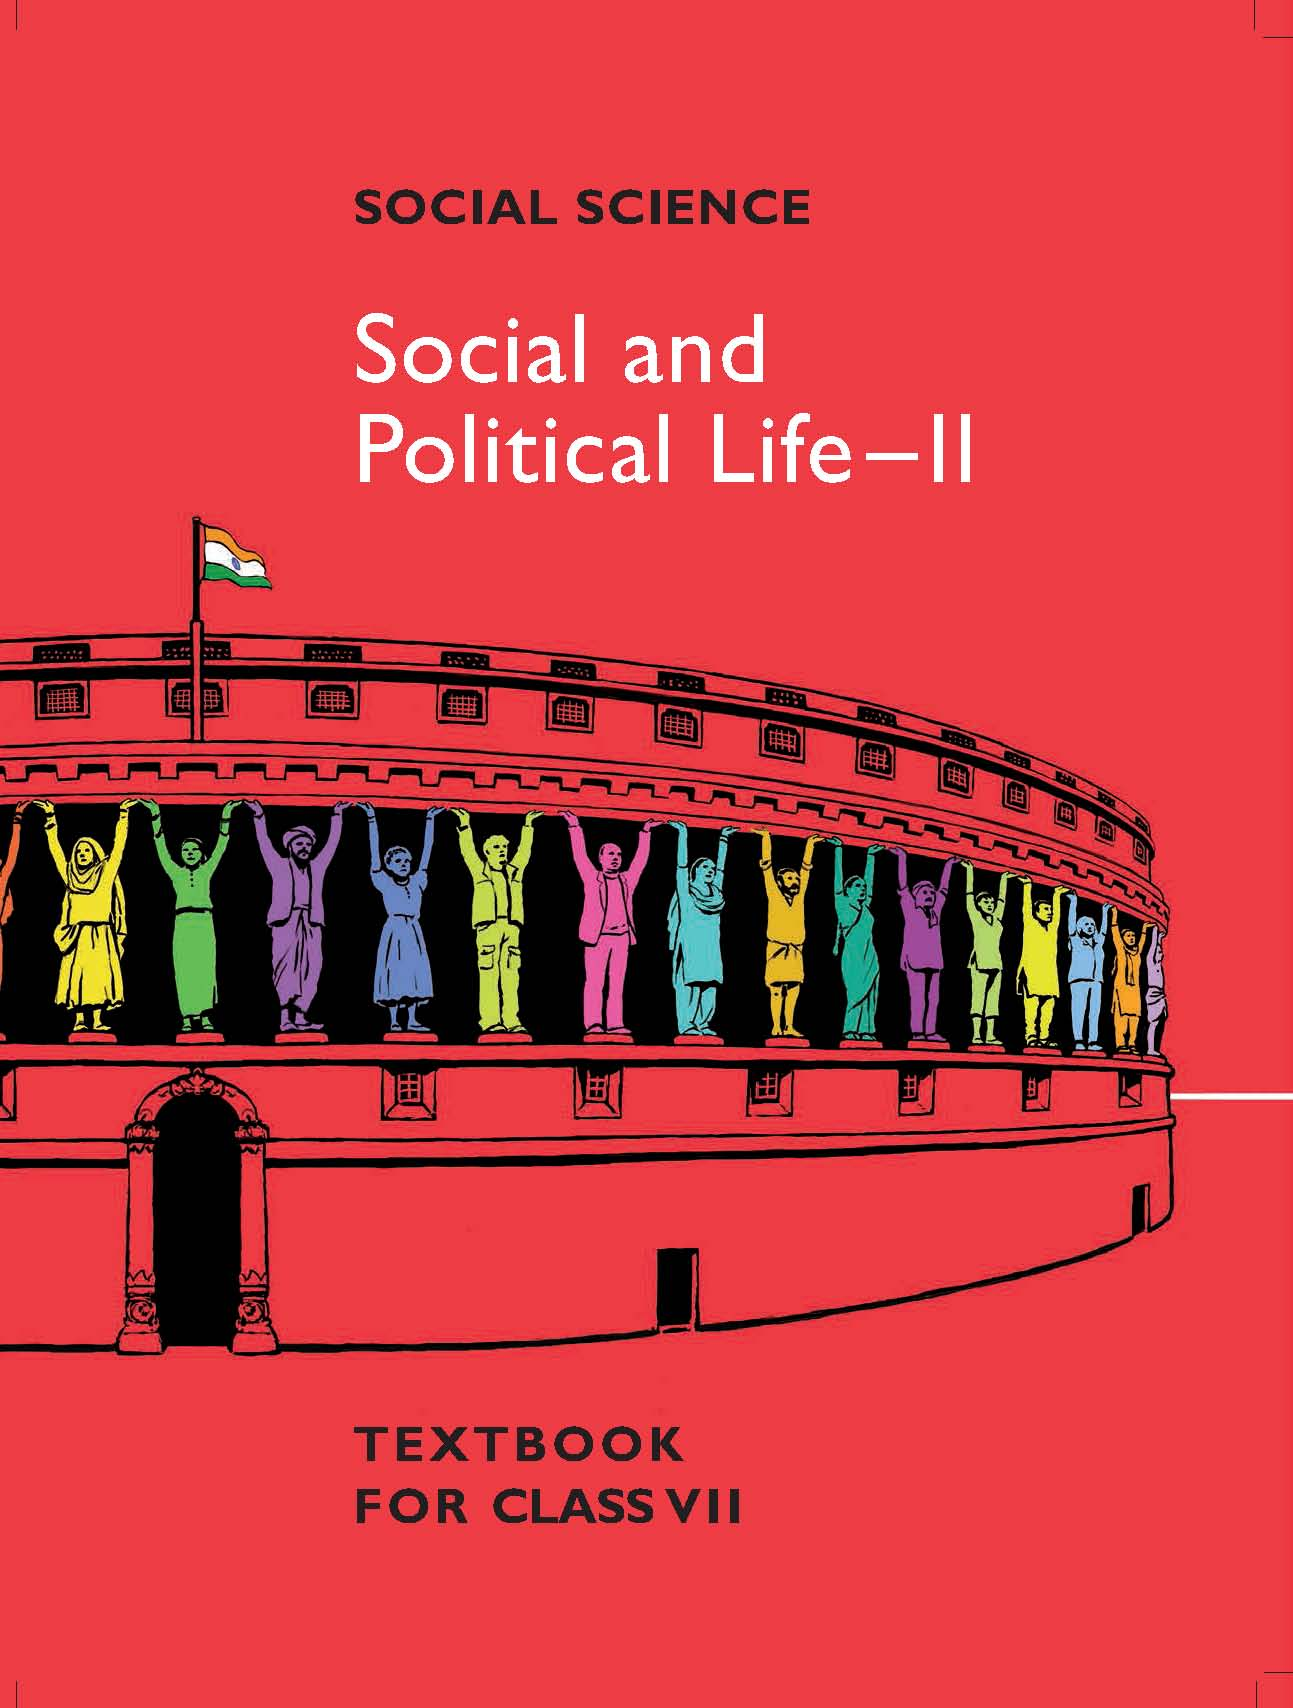 Social and Political Life II Class VII